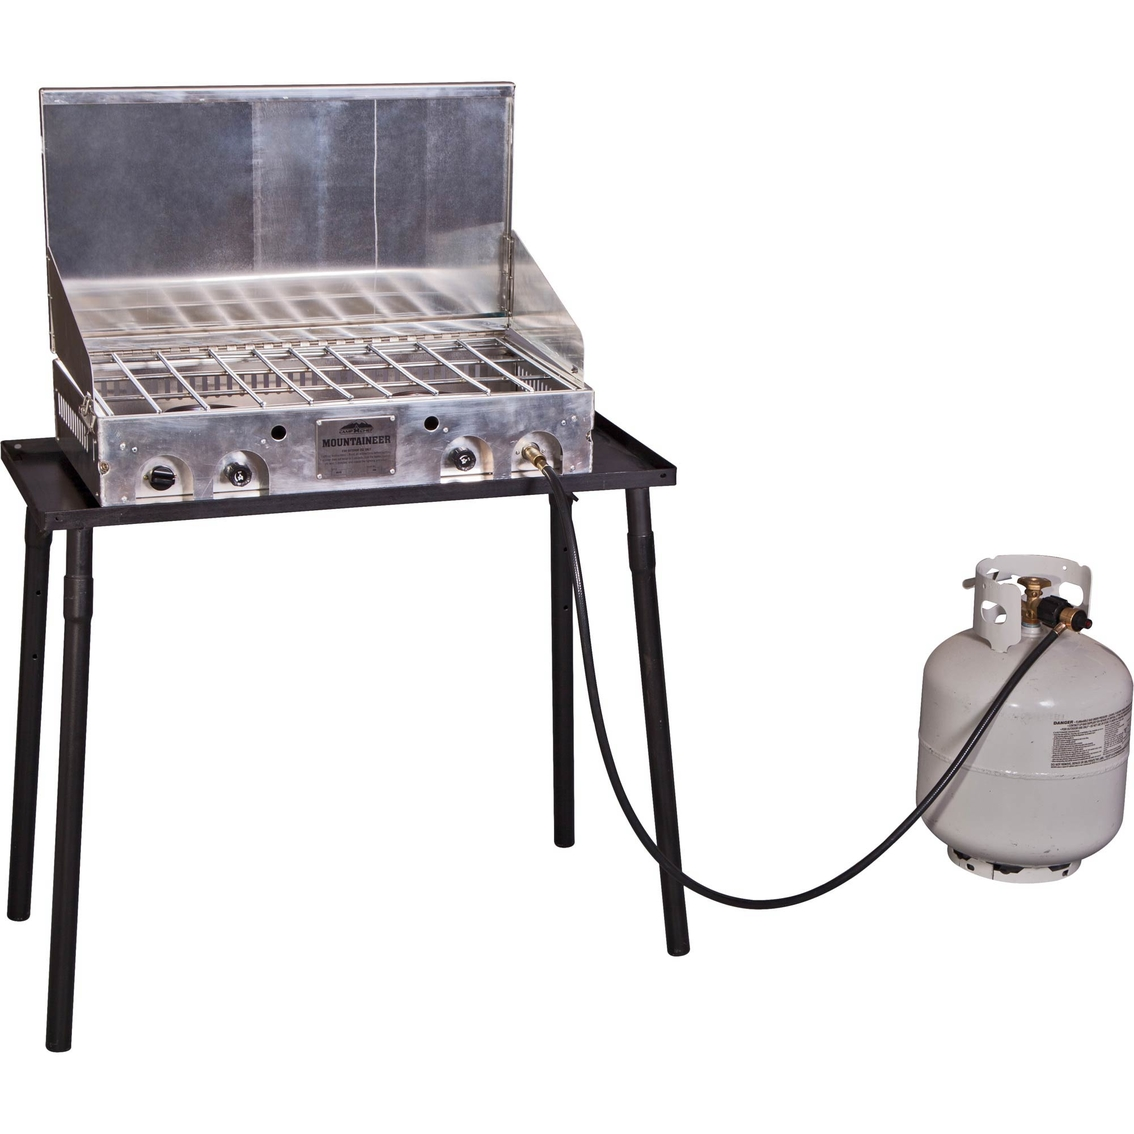 3c58fb922764 Camp Chef Mountaineer 2 Burner Aluminum Stove | Cooking | Sports ...